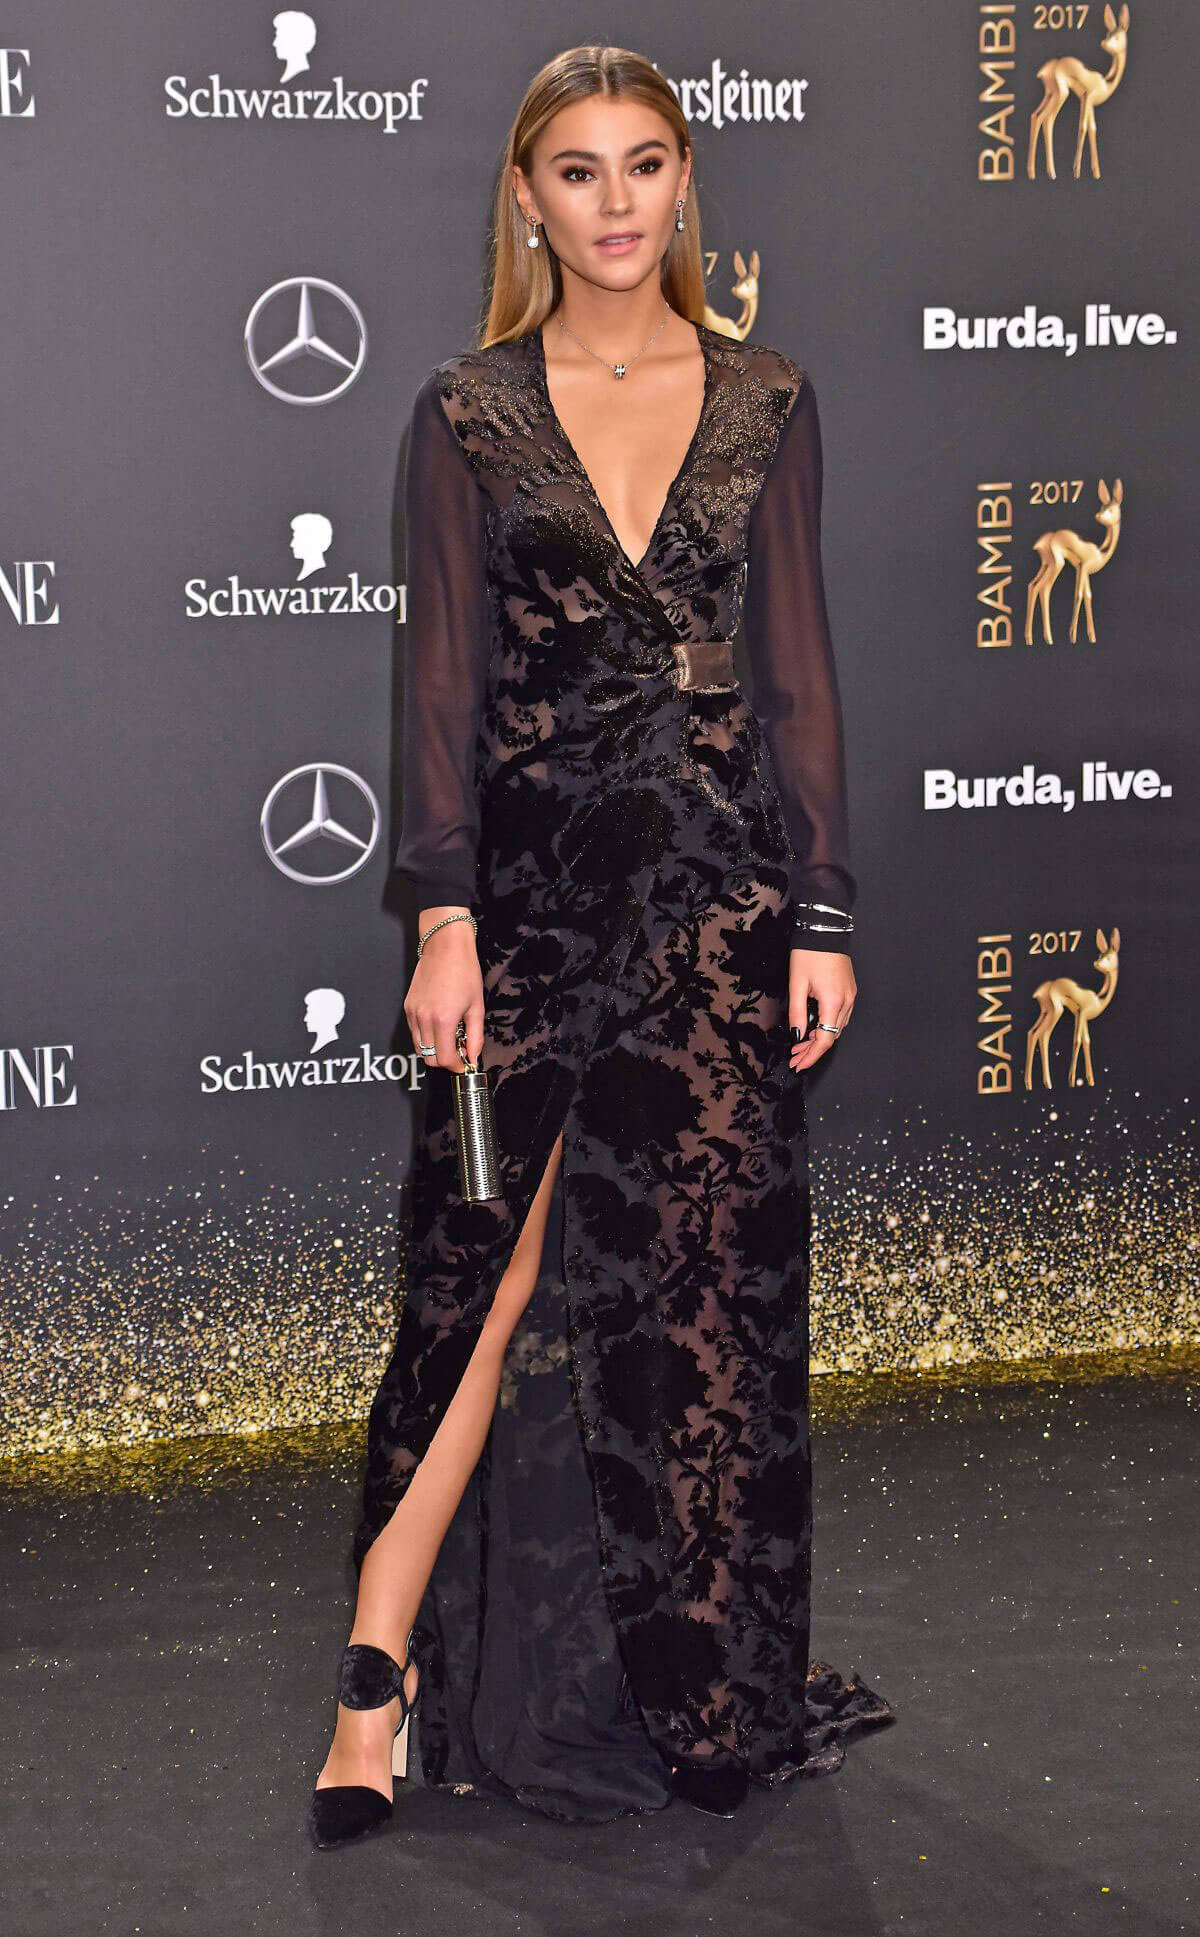 Stefanie Giesinger Stills at Bambi Awards 2017 in Berlin